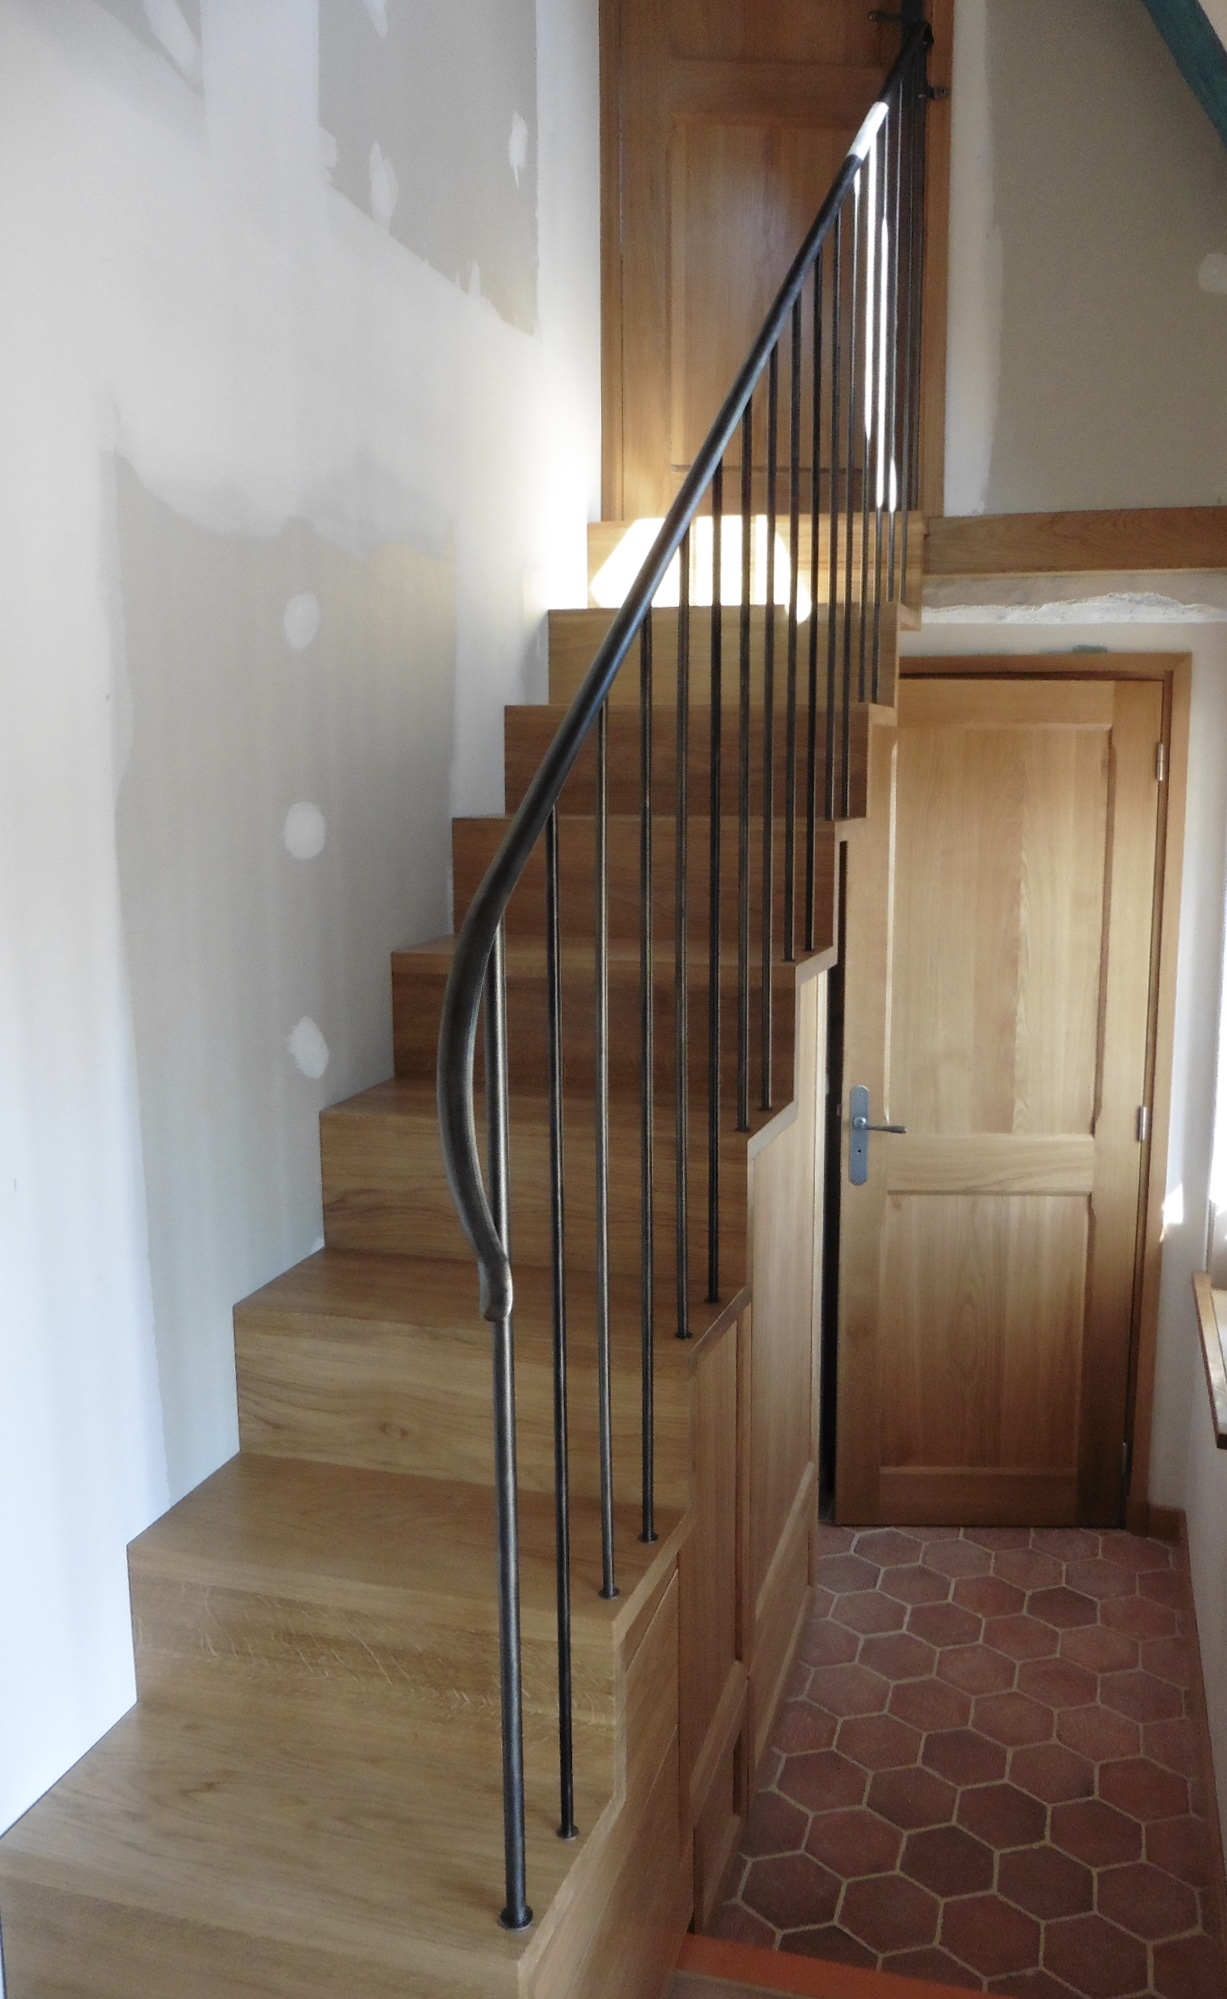 A lovely project - simple, uncluttered style railings on a Japanese style staircase with inbuilt under storage.